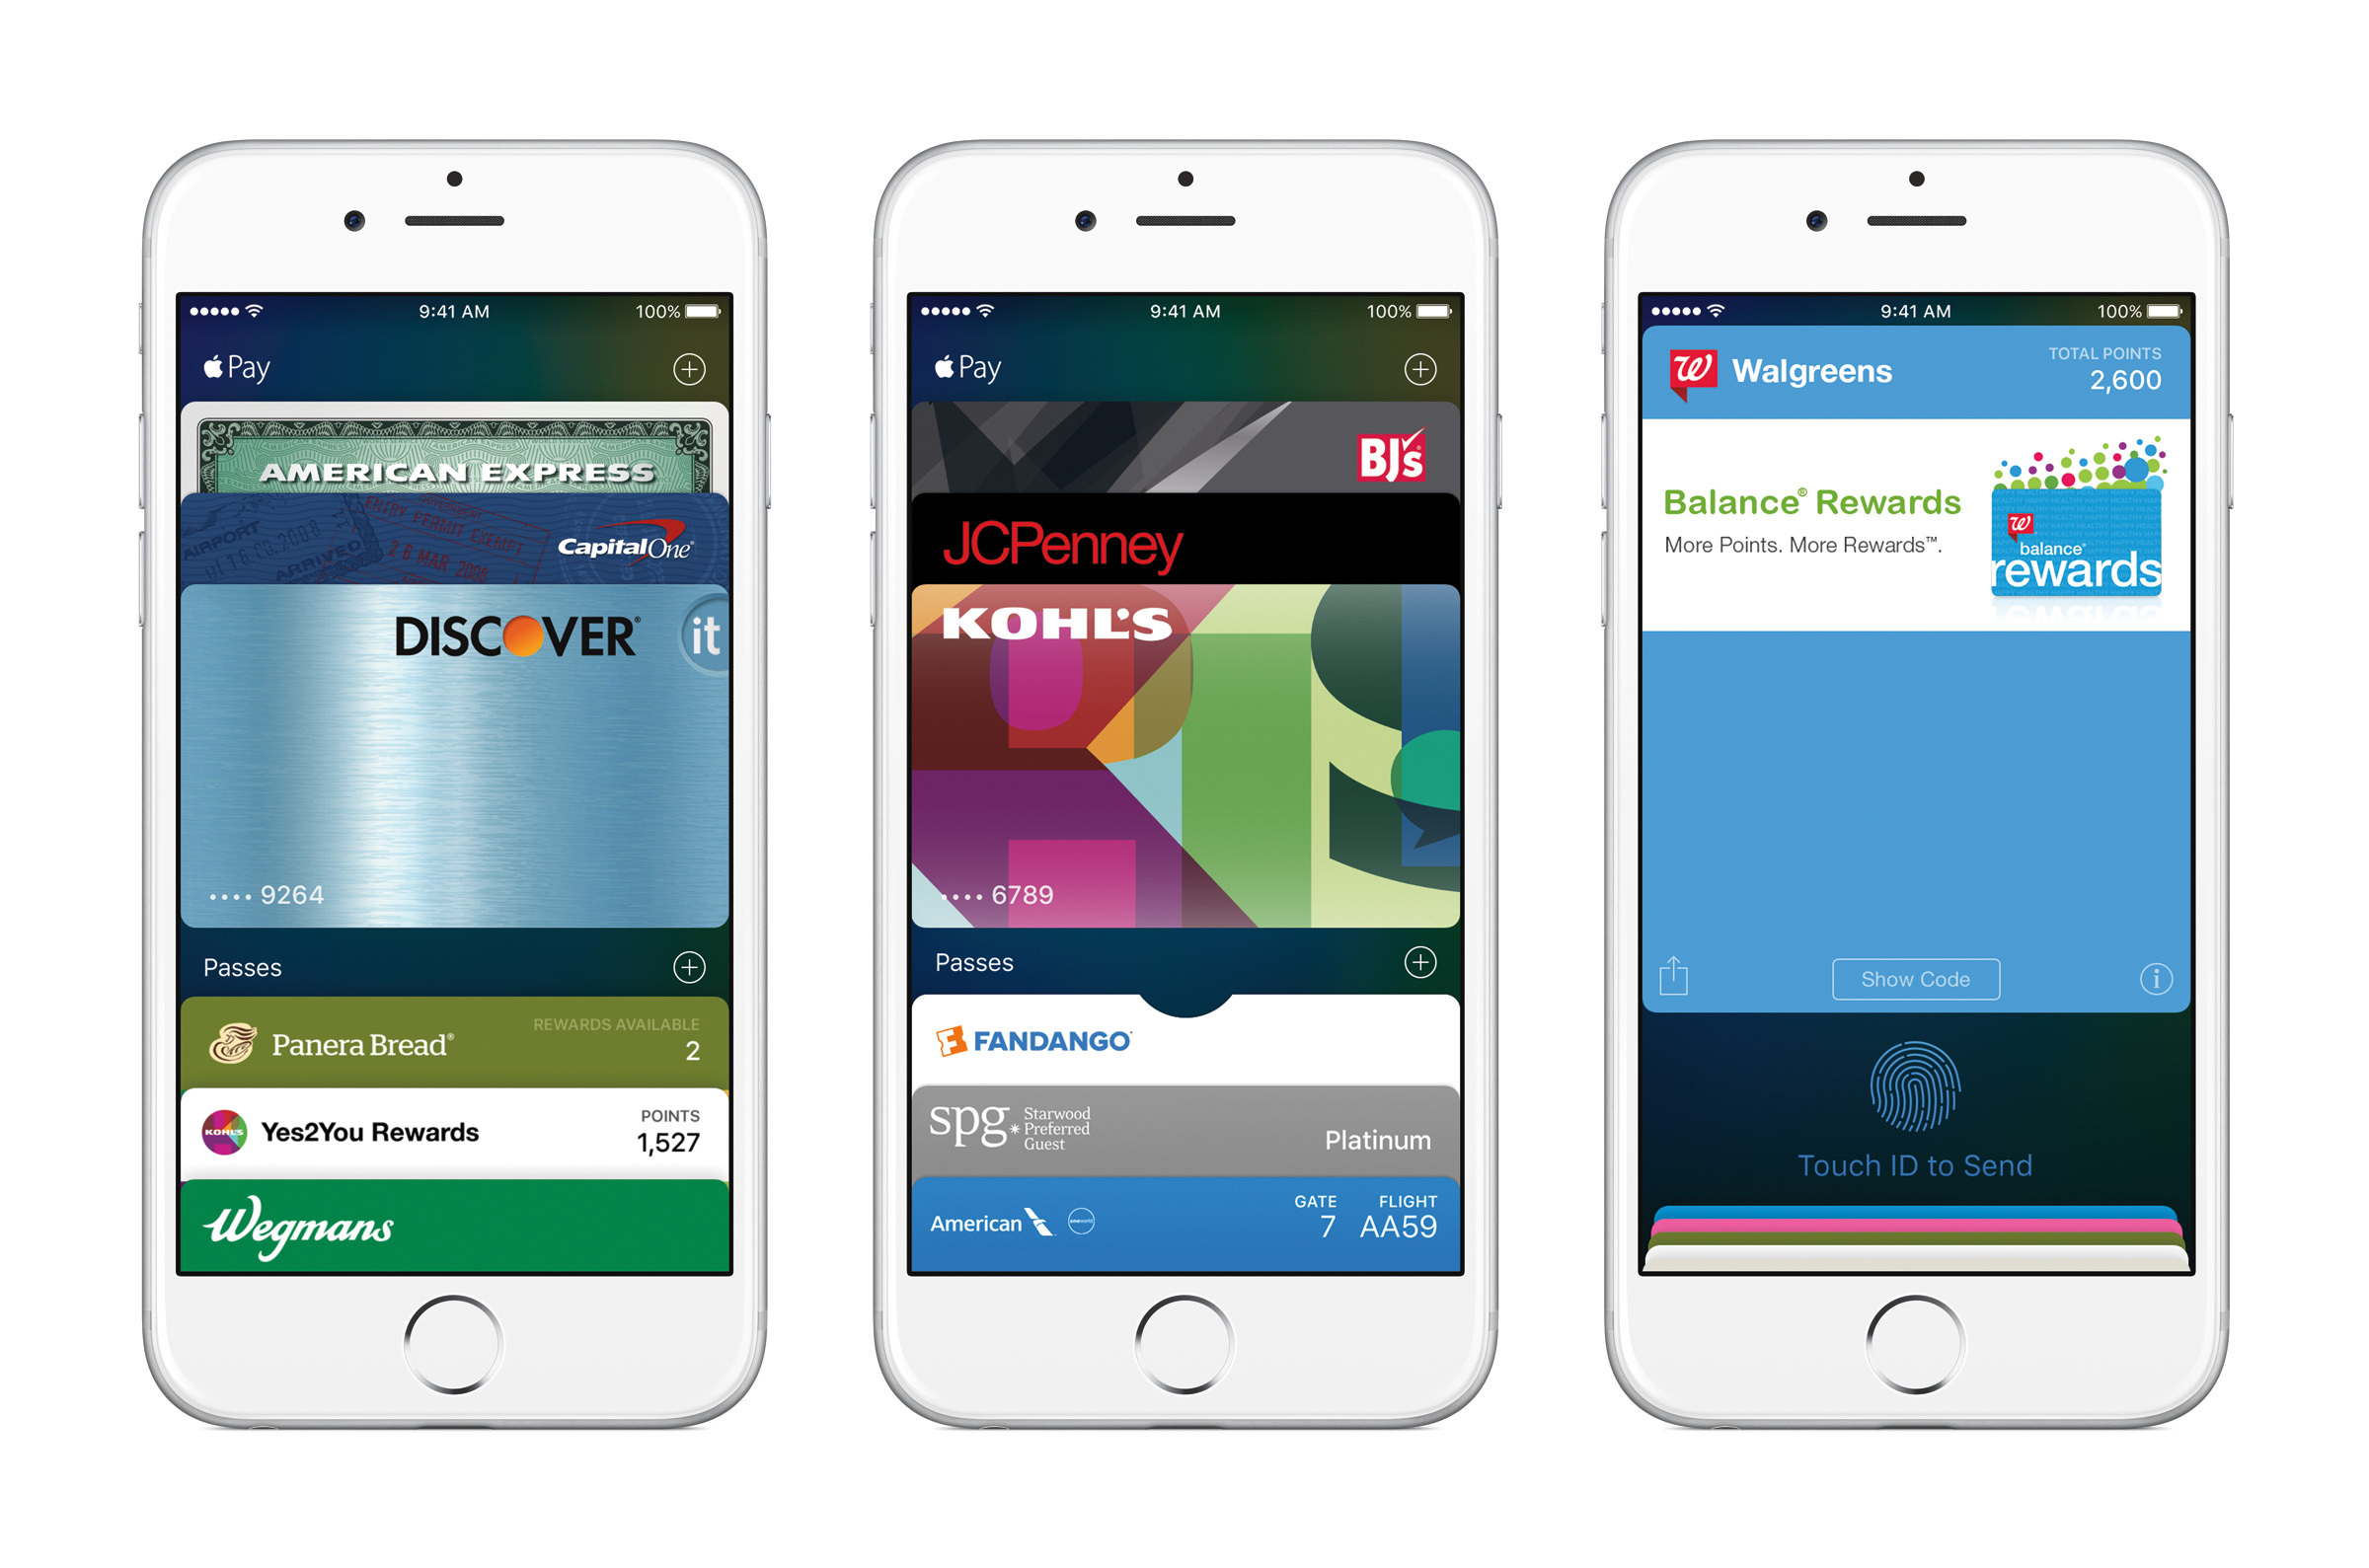 The Kohl's store credit card can now be used with Apple Pay